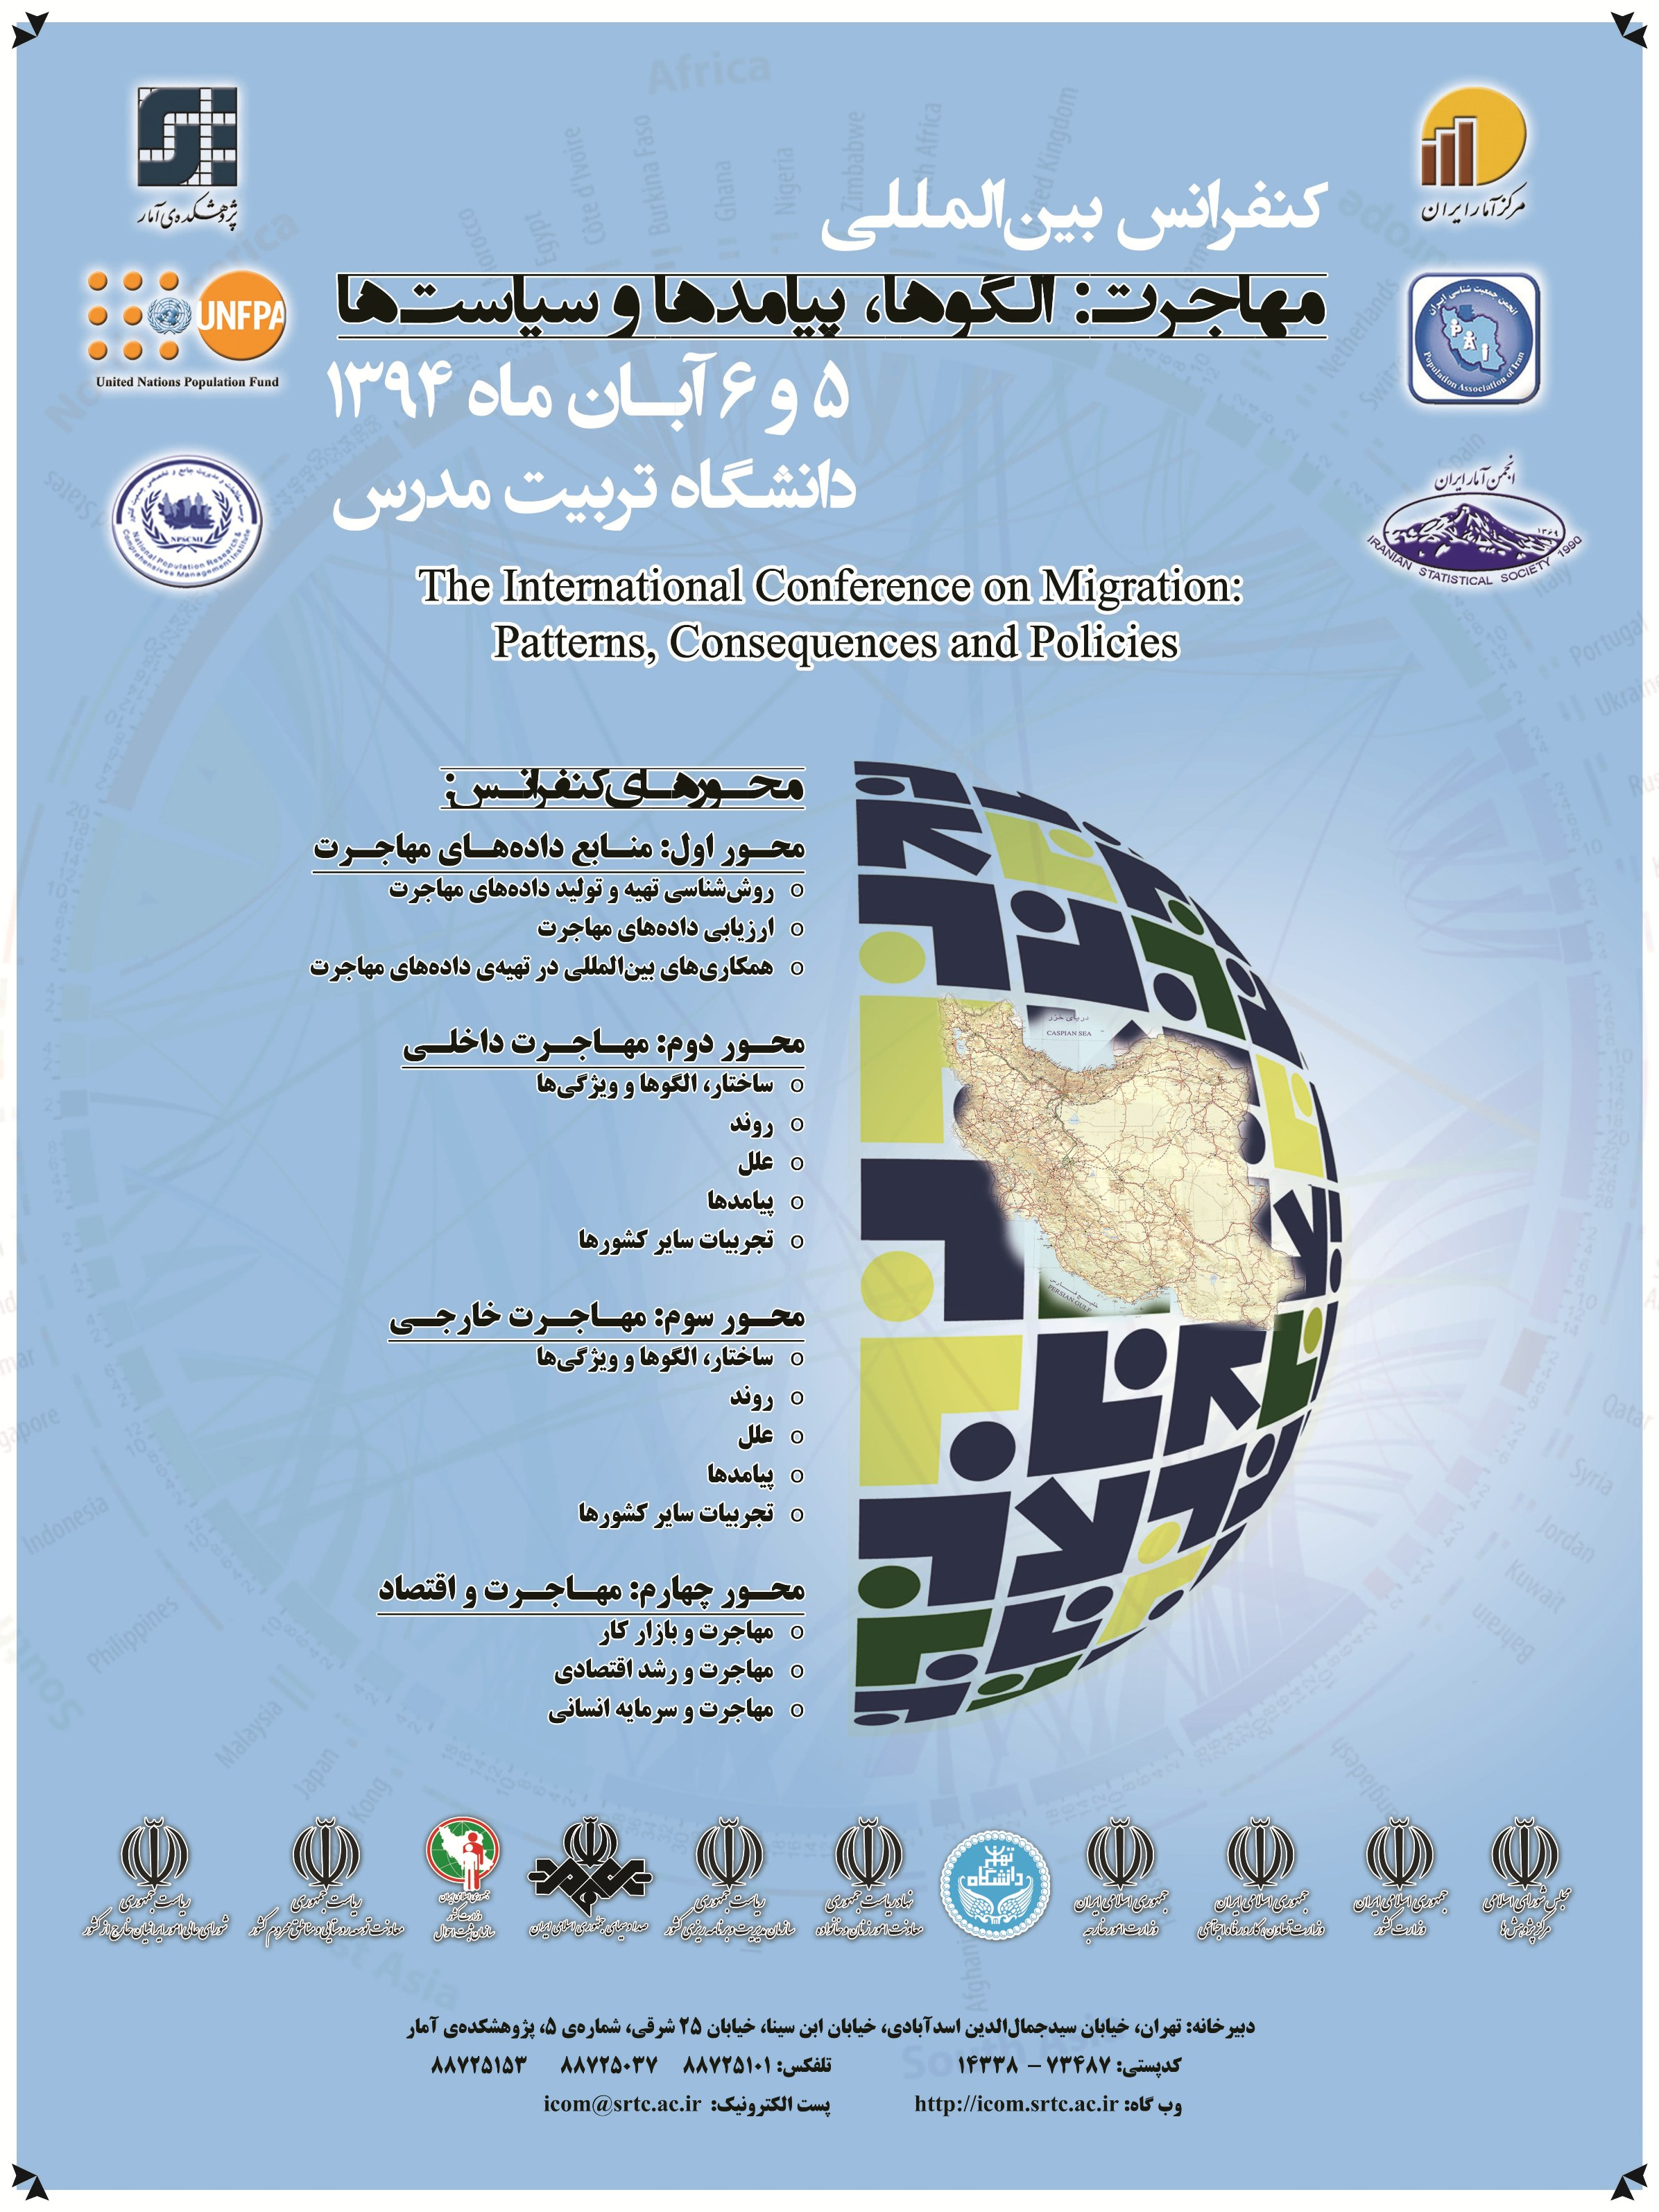 The International Conference on Migration: Pattern